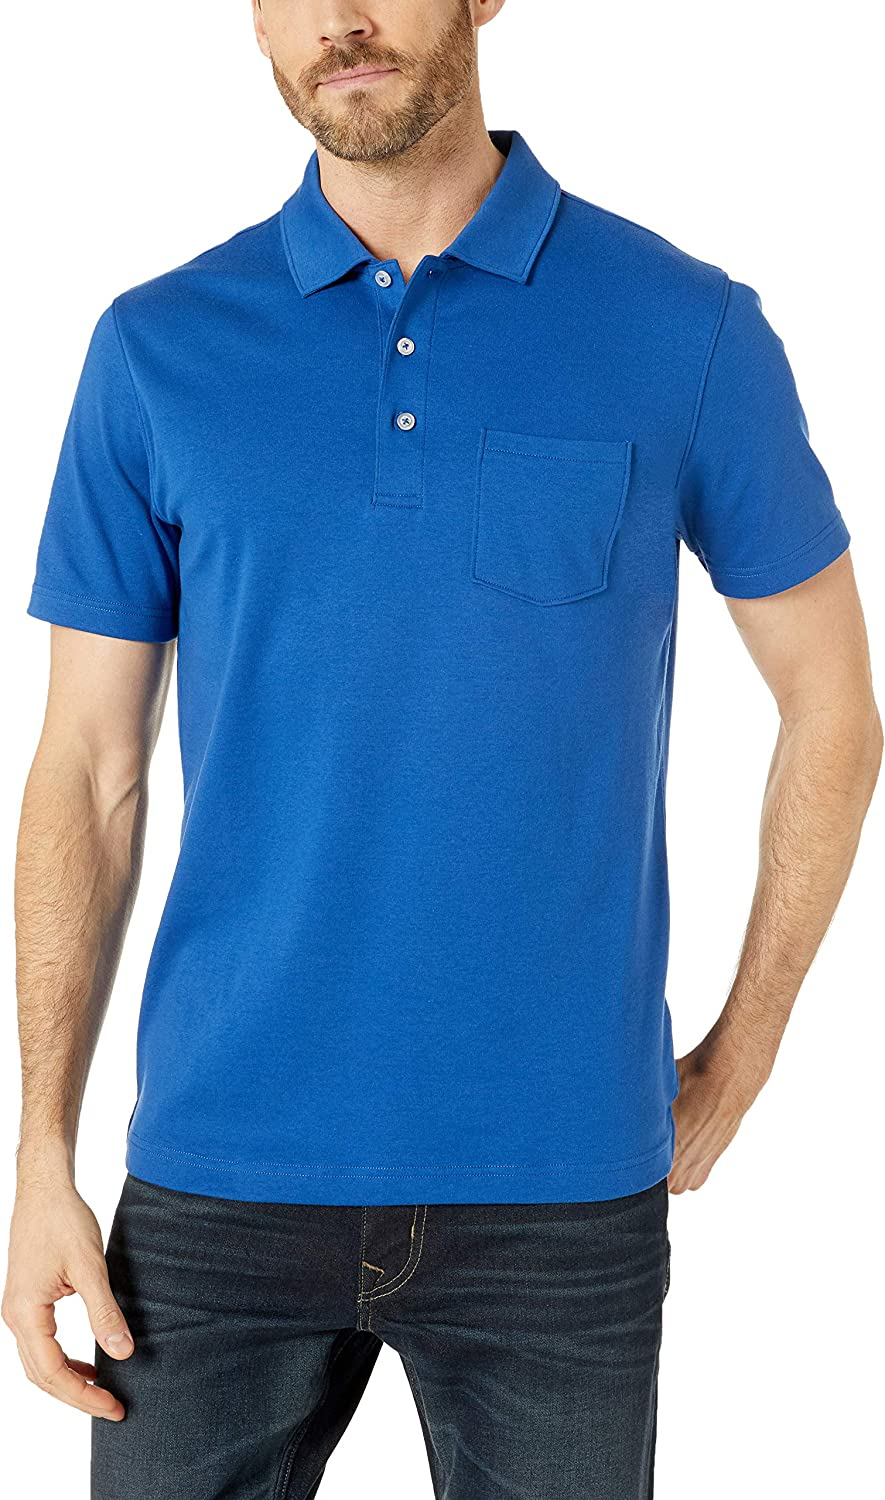 Essentials Mens Slim-fit Jersey Polo